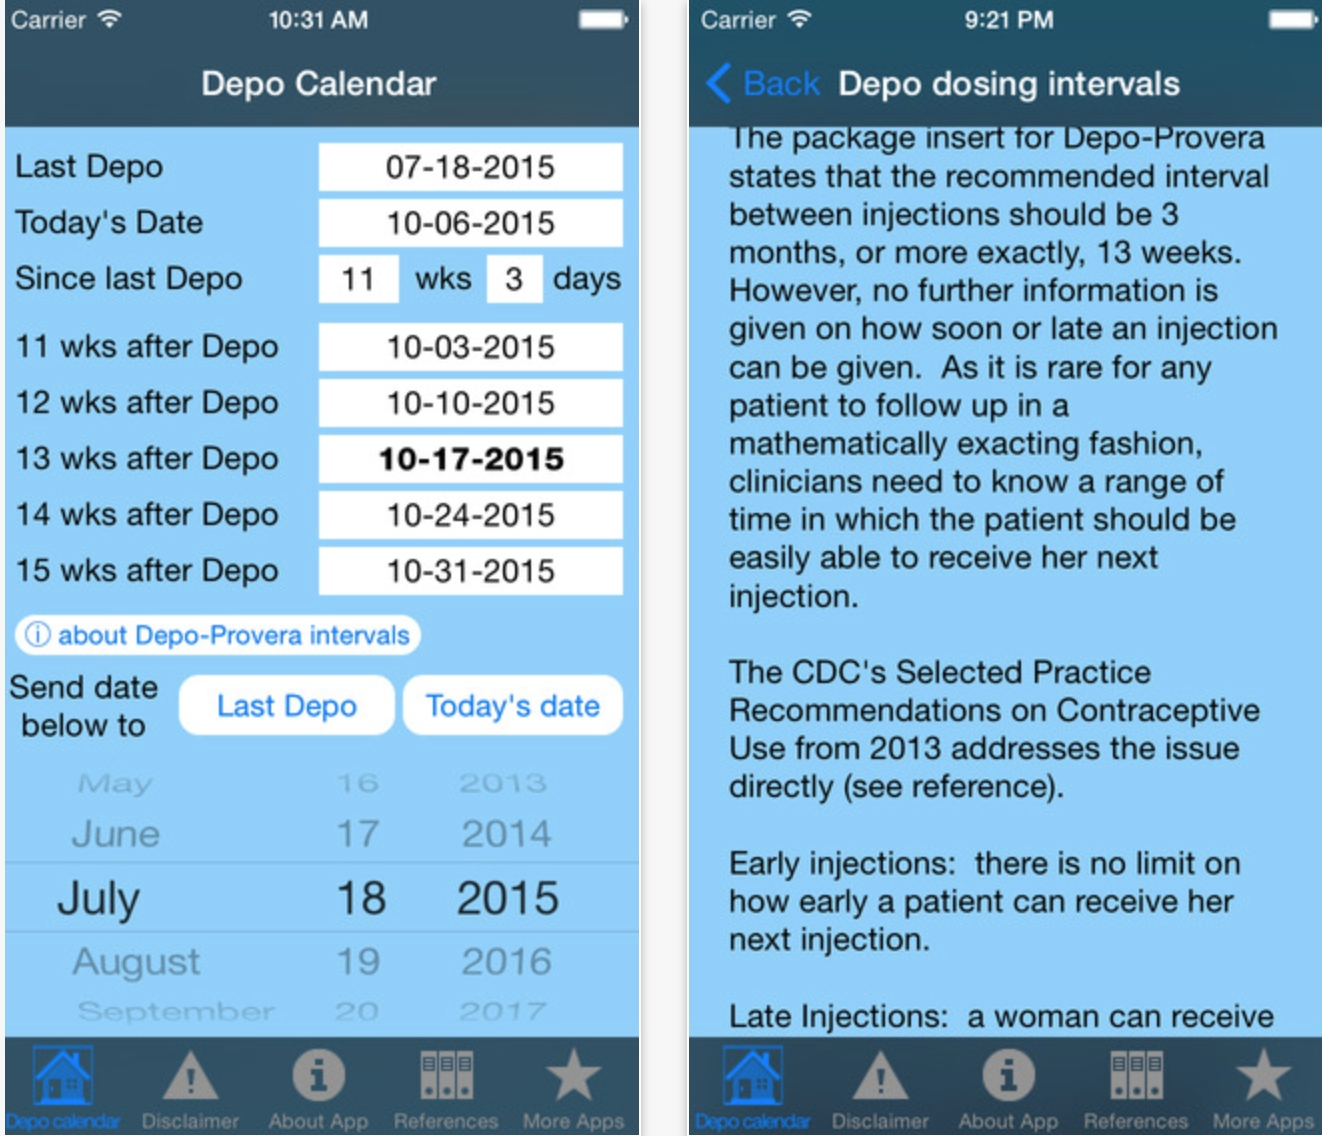 Depo Calendar App Could Significantly Improve Contraception  Depo Provera July Schedule